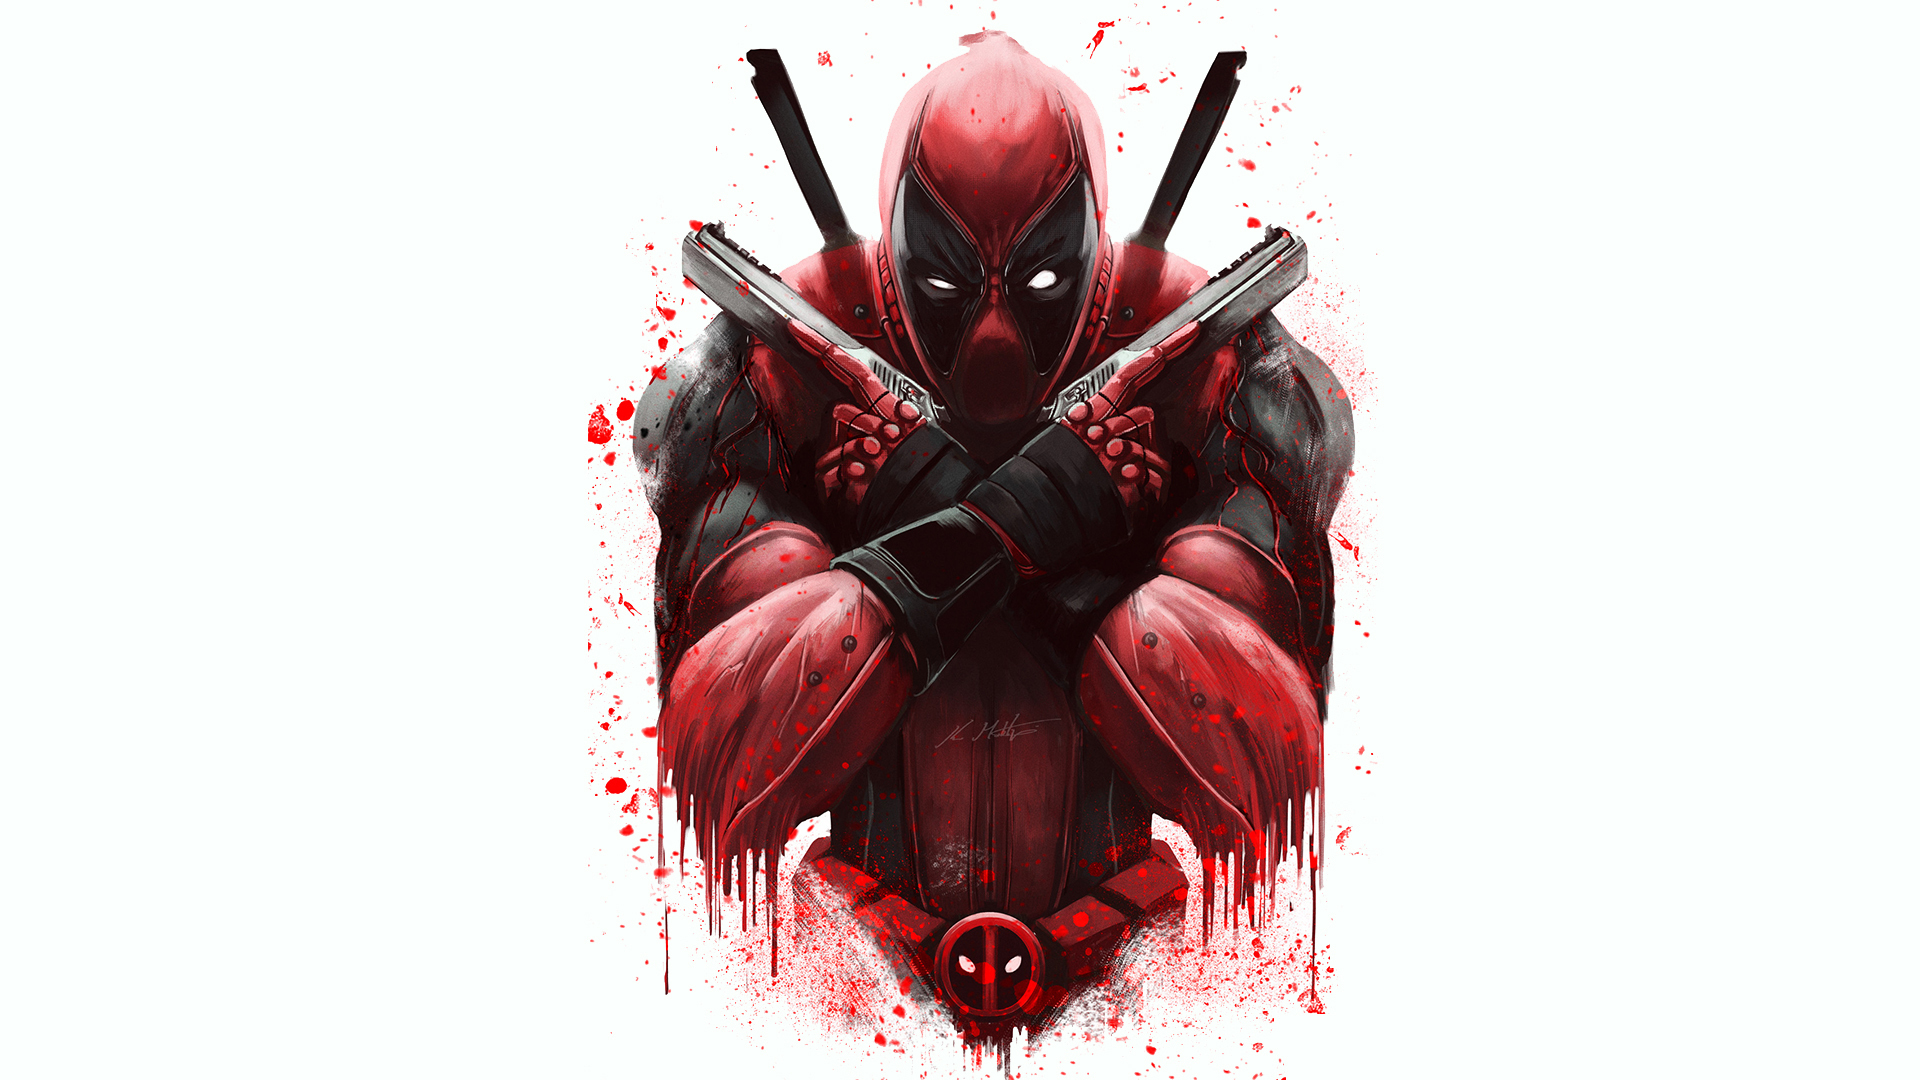 1920x1080 Marvel Deadpool Artwork 1080p Laptop Full Hd Wallpaper Hd Movies 4k Wallpapers Images Photos And Background